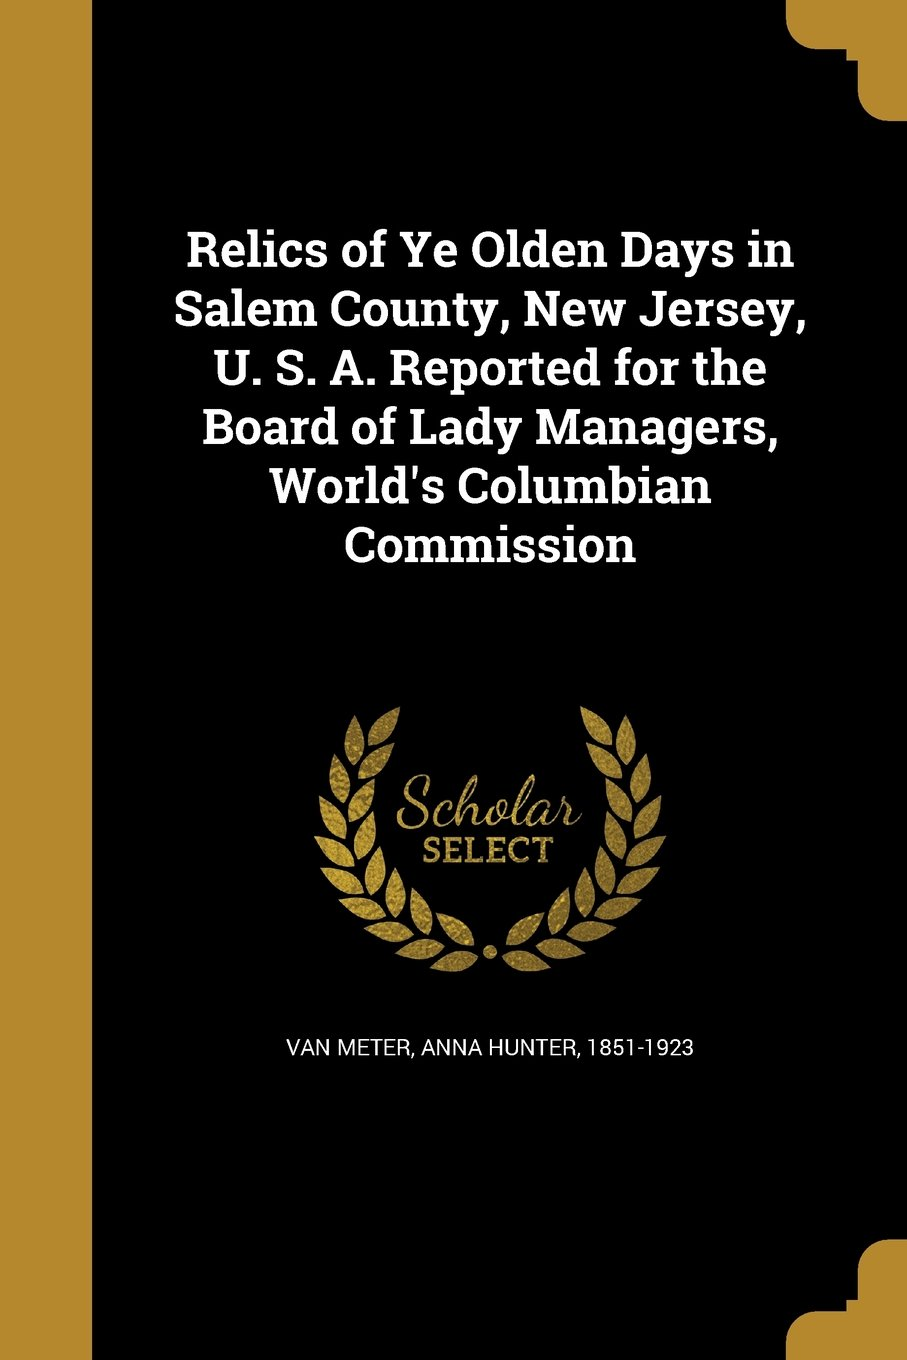 Relics of Ye Olden Days in Salem County, New Jersey, U. S. A. Reported for the Board of Lady Managers, World's Columbian Commission pdf